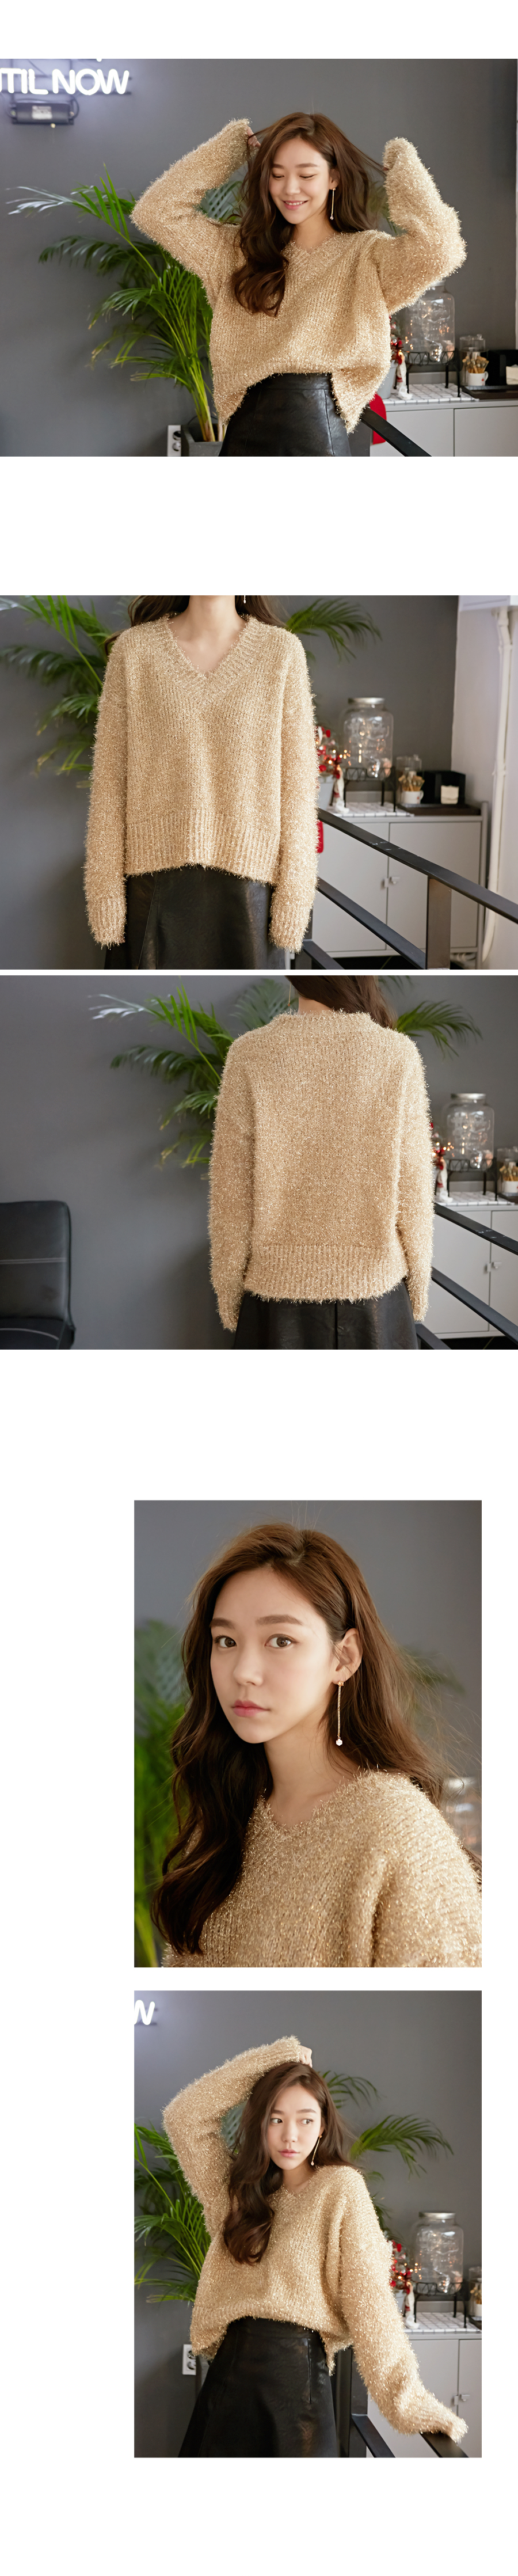 For holiday twinkle knit_Y (size : free)